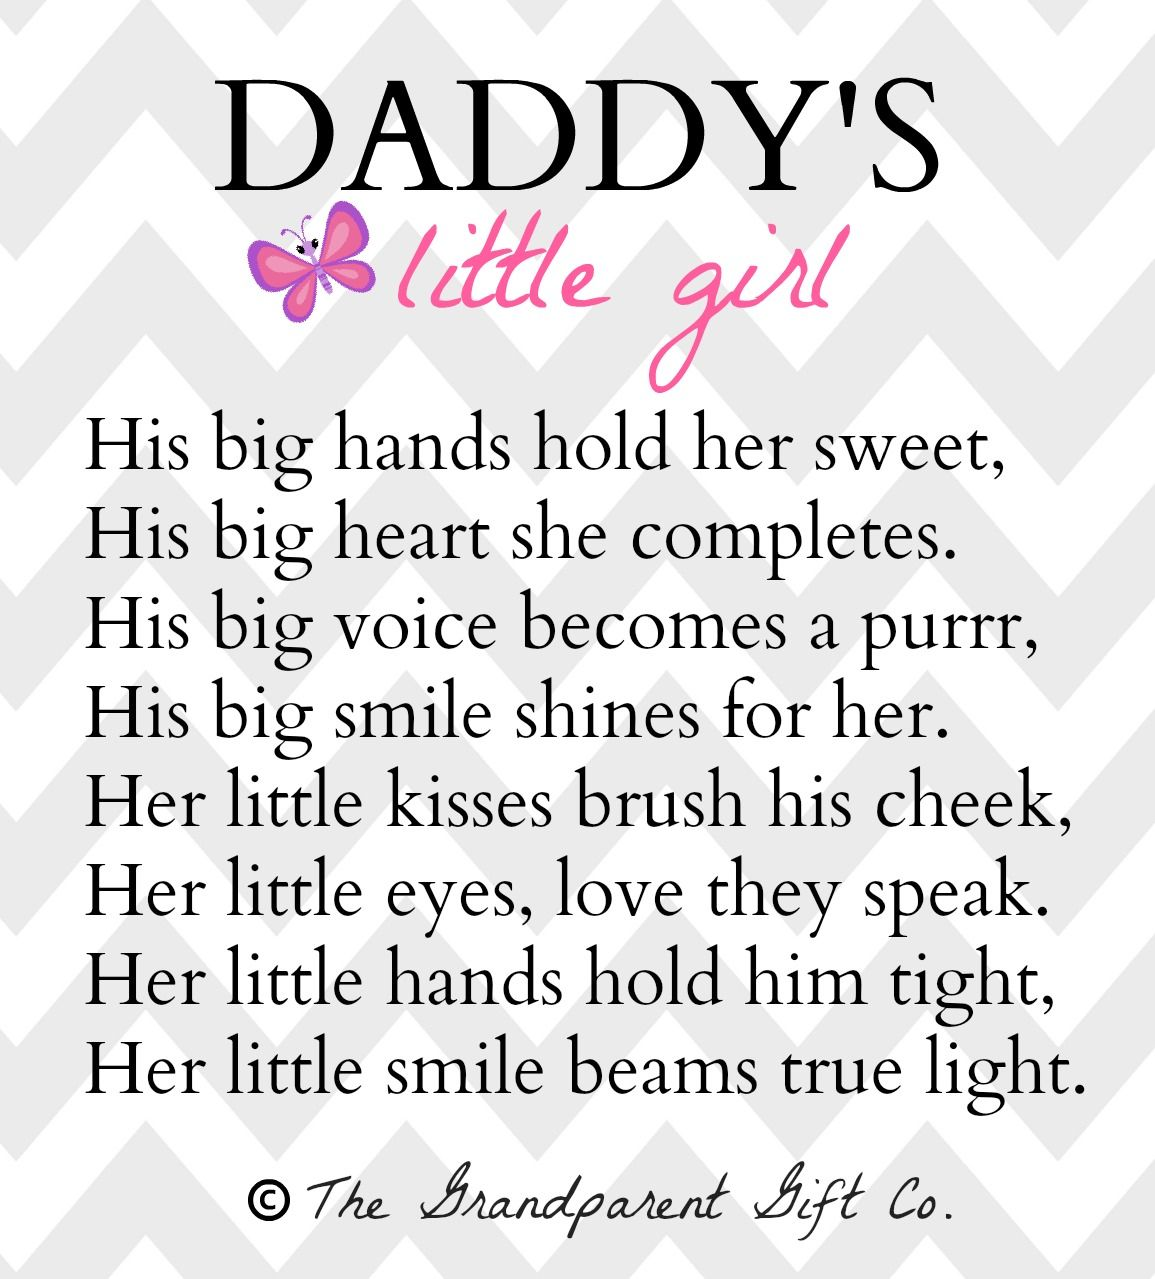 Daddys Little Girl Poem By The Grandparent Gift Co Fathers Day